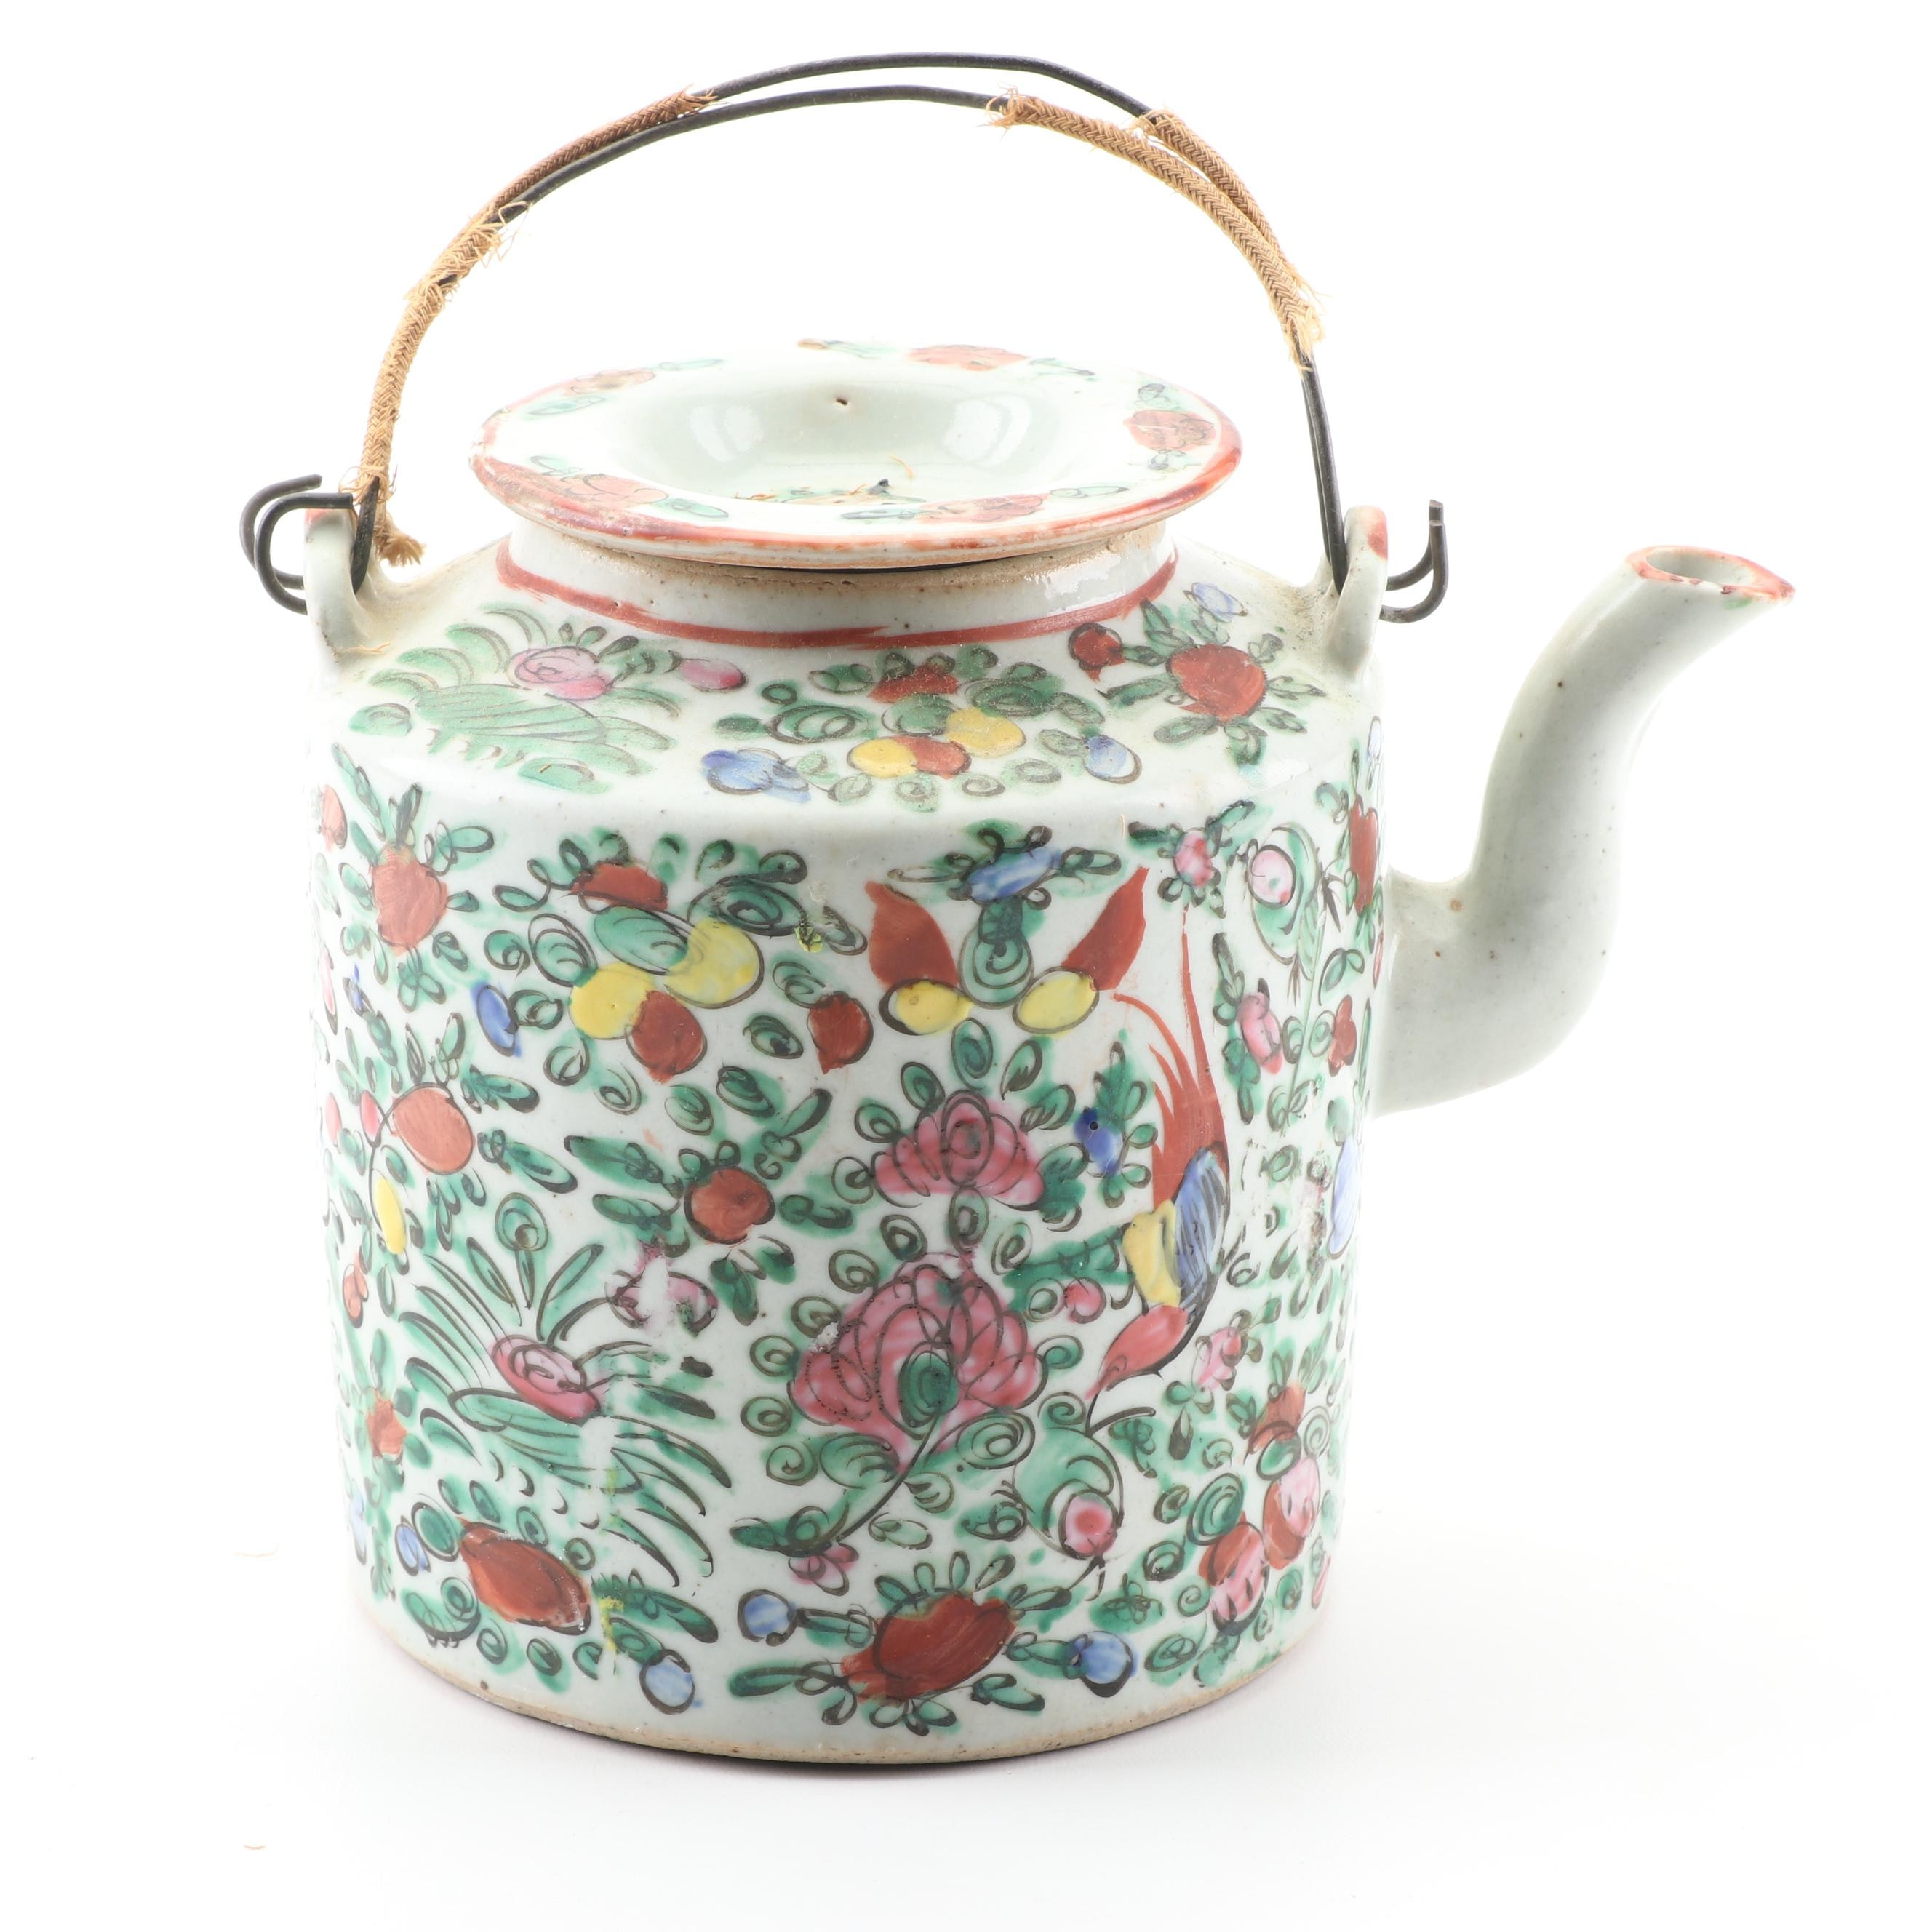 Chinese Ceramic Teapot, Late Qing Dynasty